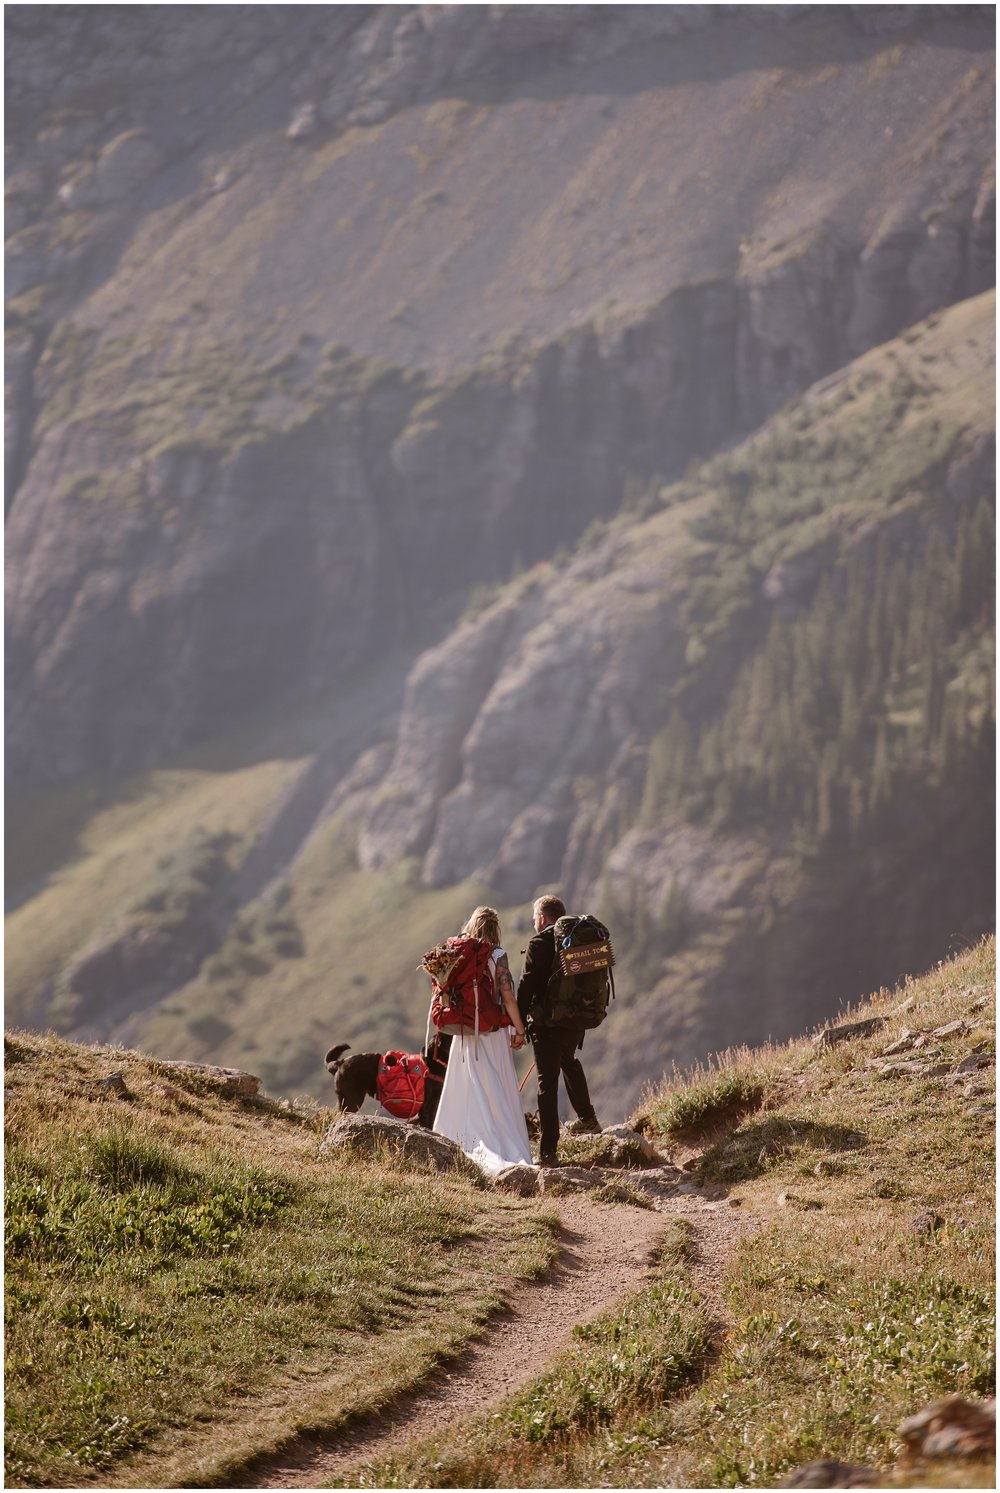 A bride, a groom, and their dog hike down a dirty path toward a rocky, grassy mountain range. Though dressed in their wedding attire, all of them (the dog included) are equipped with backpacks and hiking gear. These elopement pictures were captured by Adventure Instead, an elopement wedding photographer.